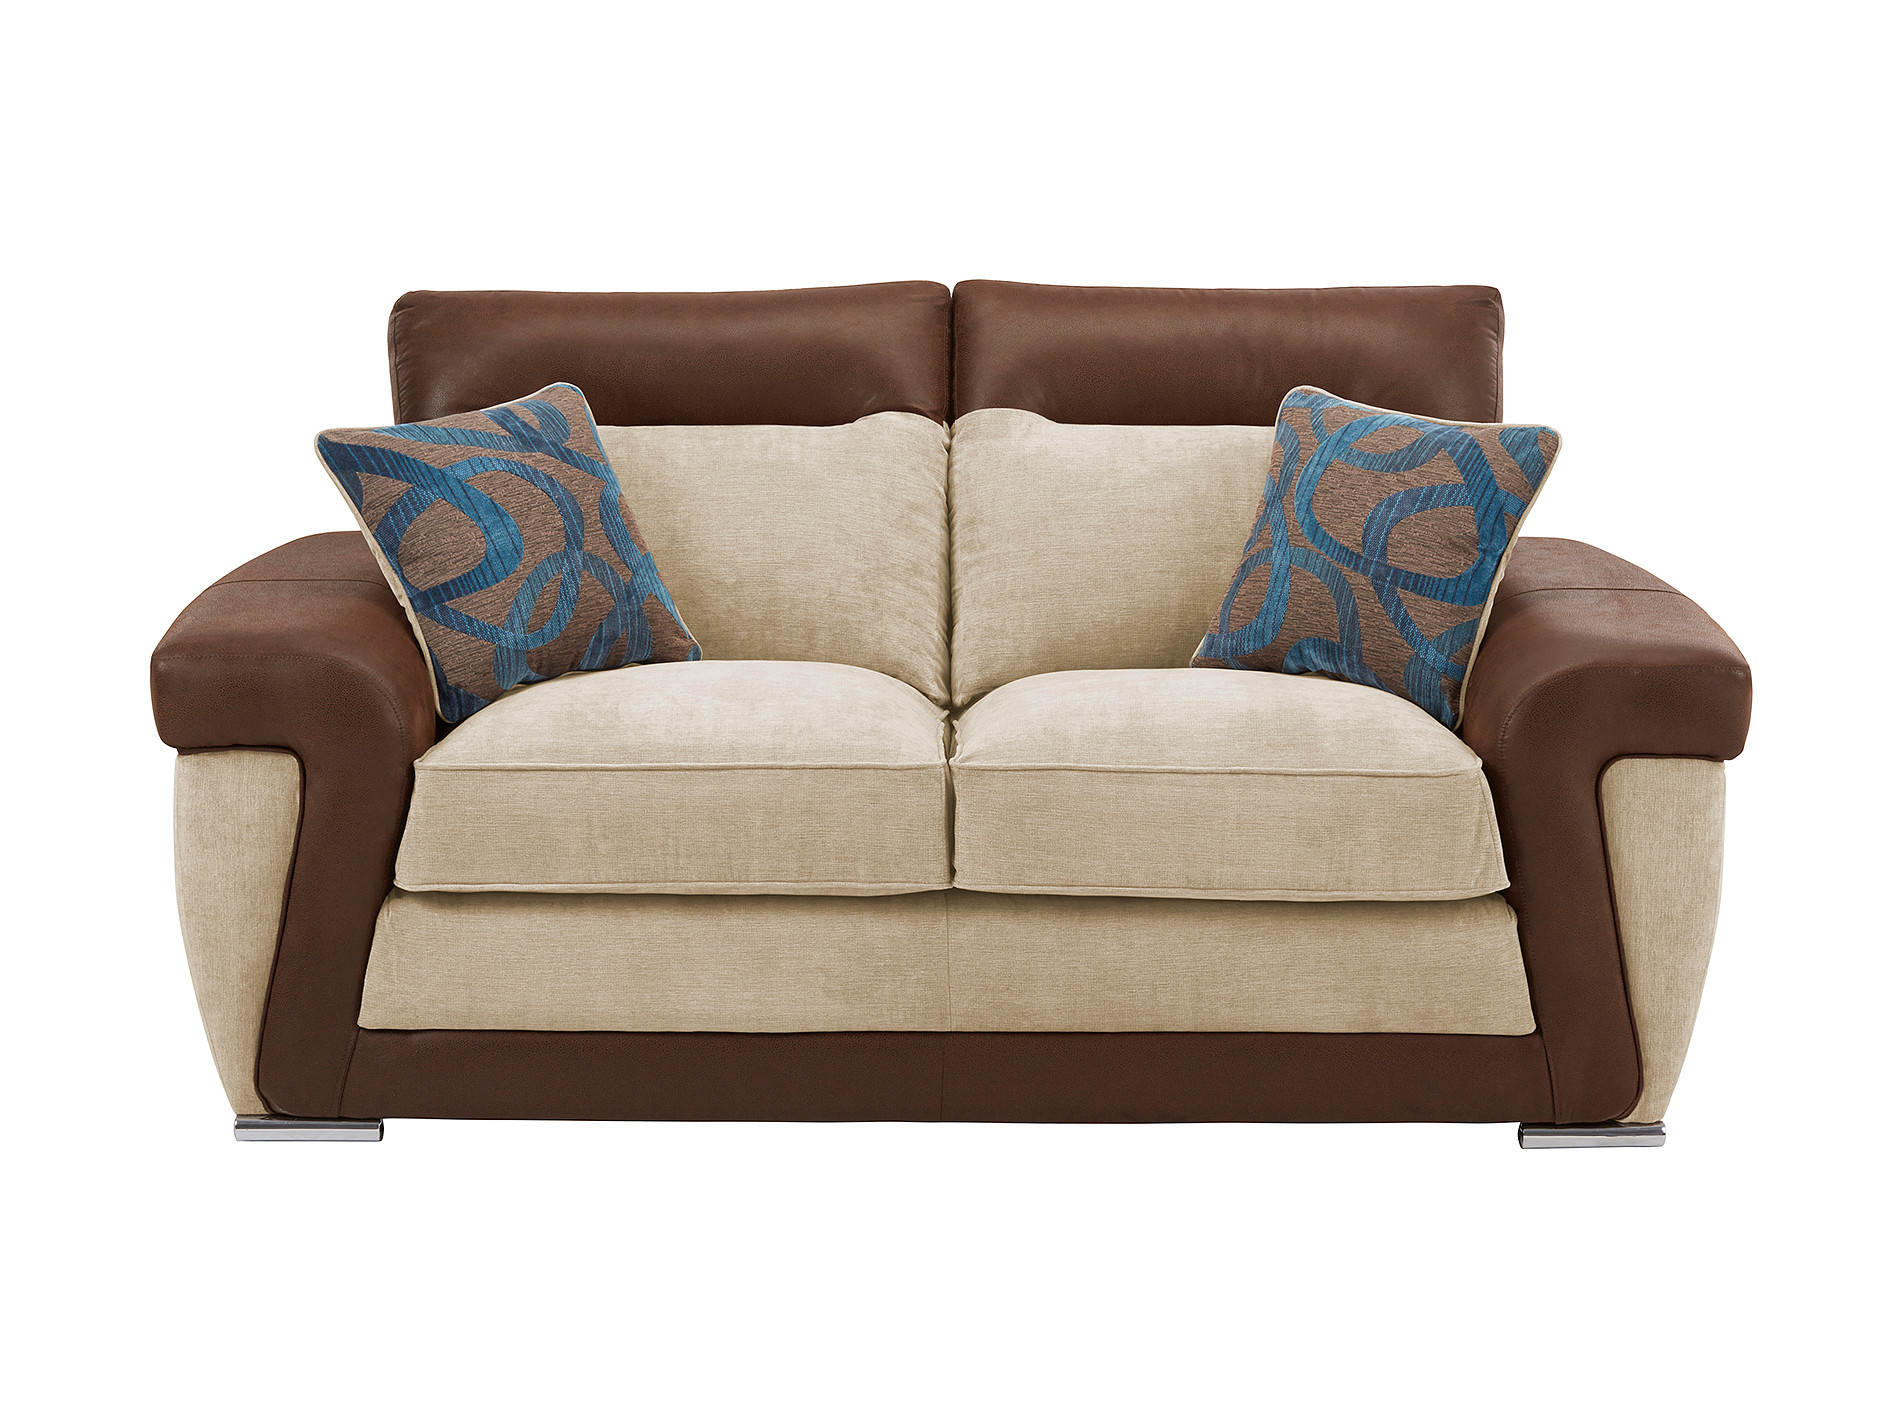 Mason small sofa in grace taupe for Teal and brown chair